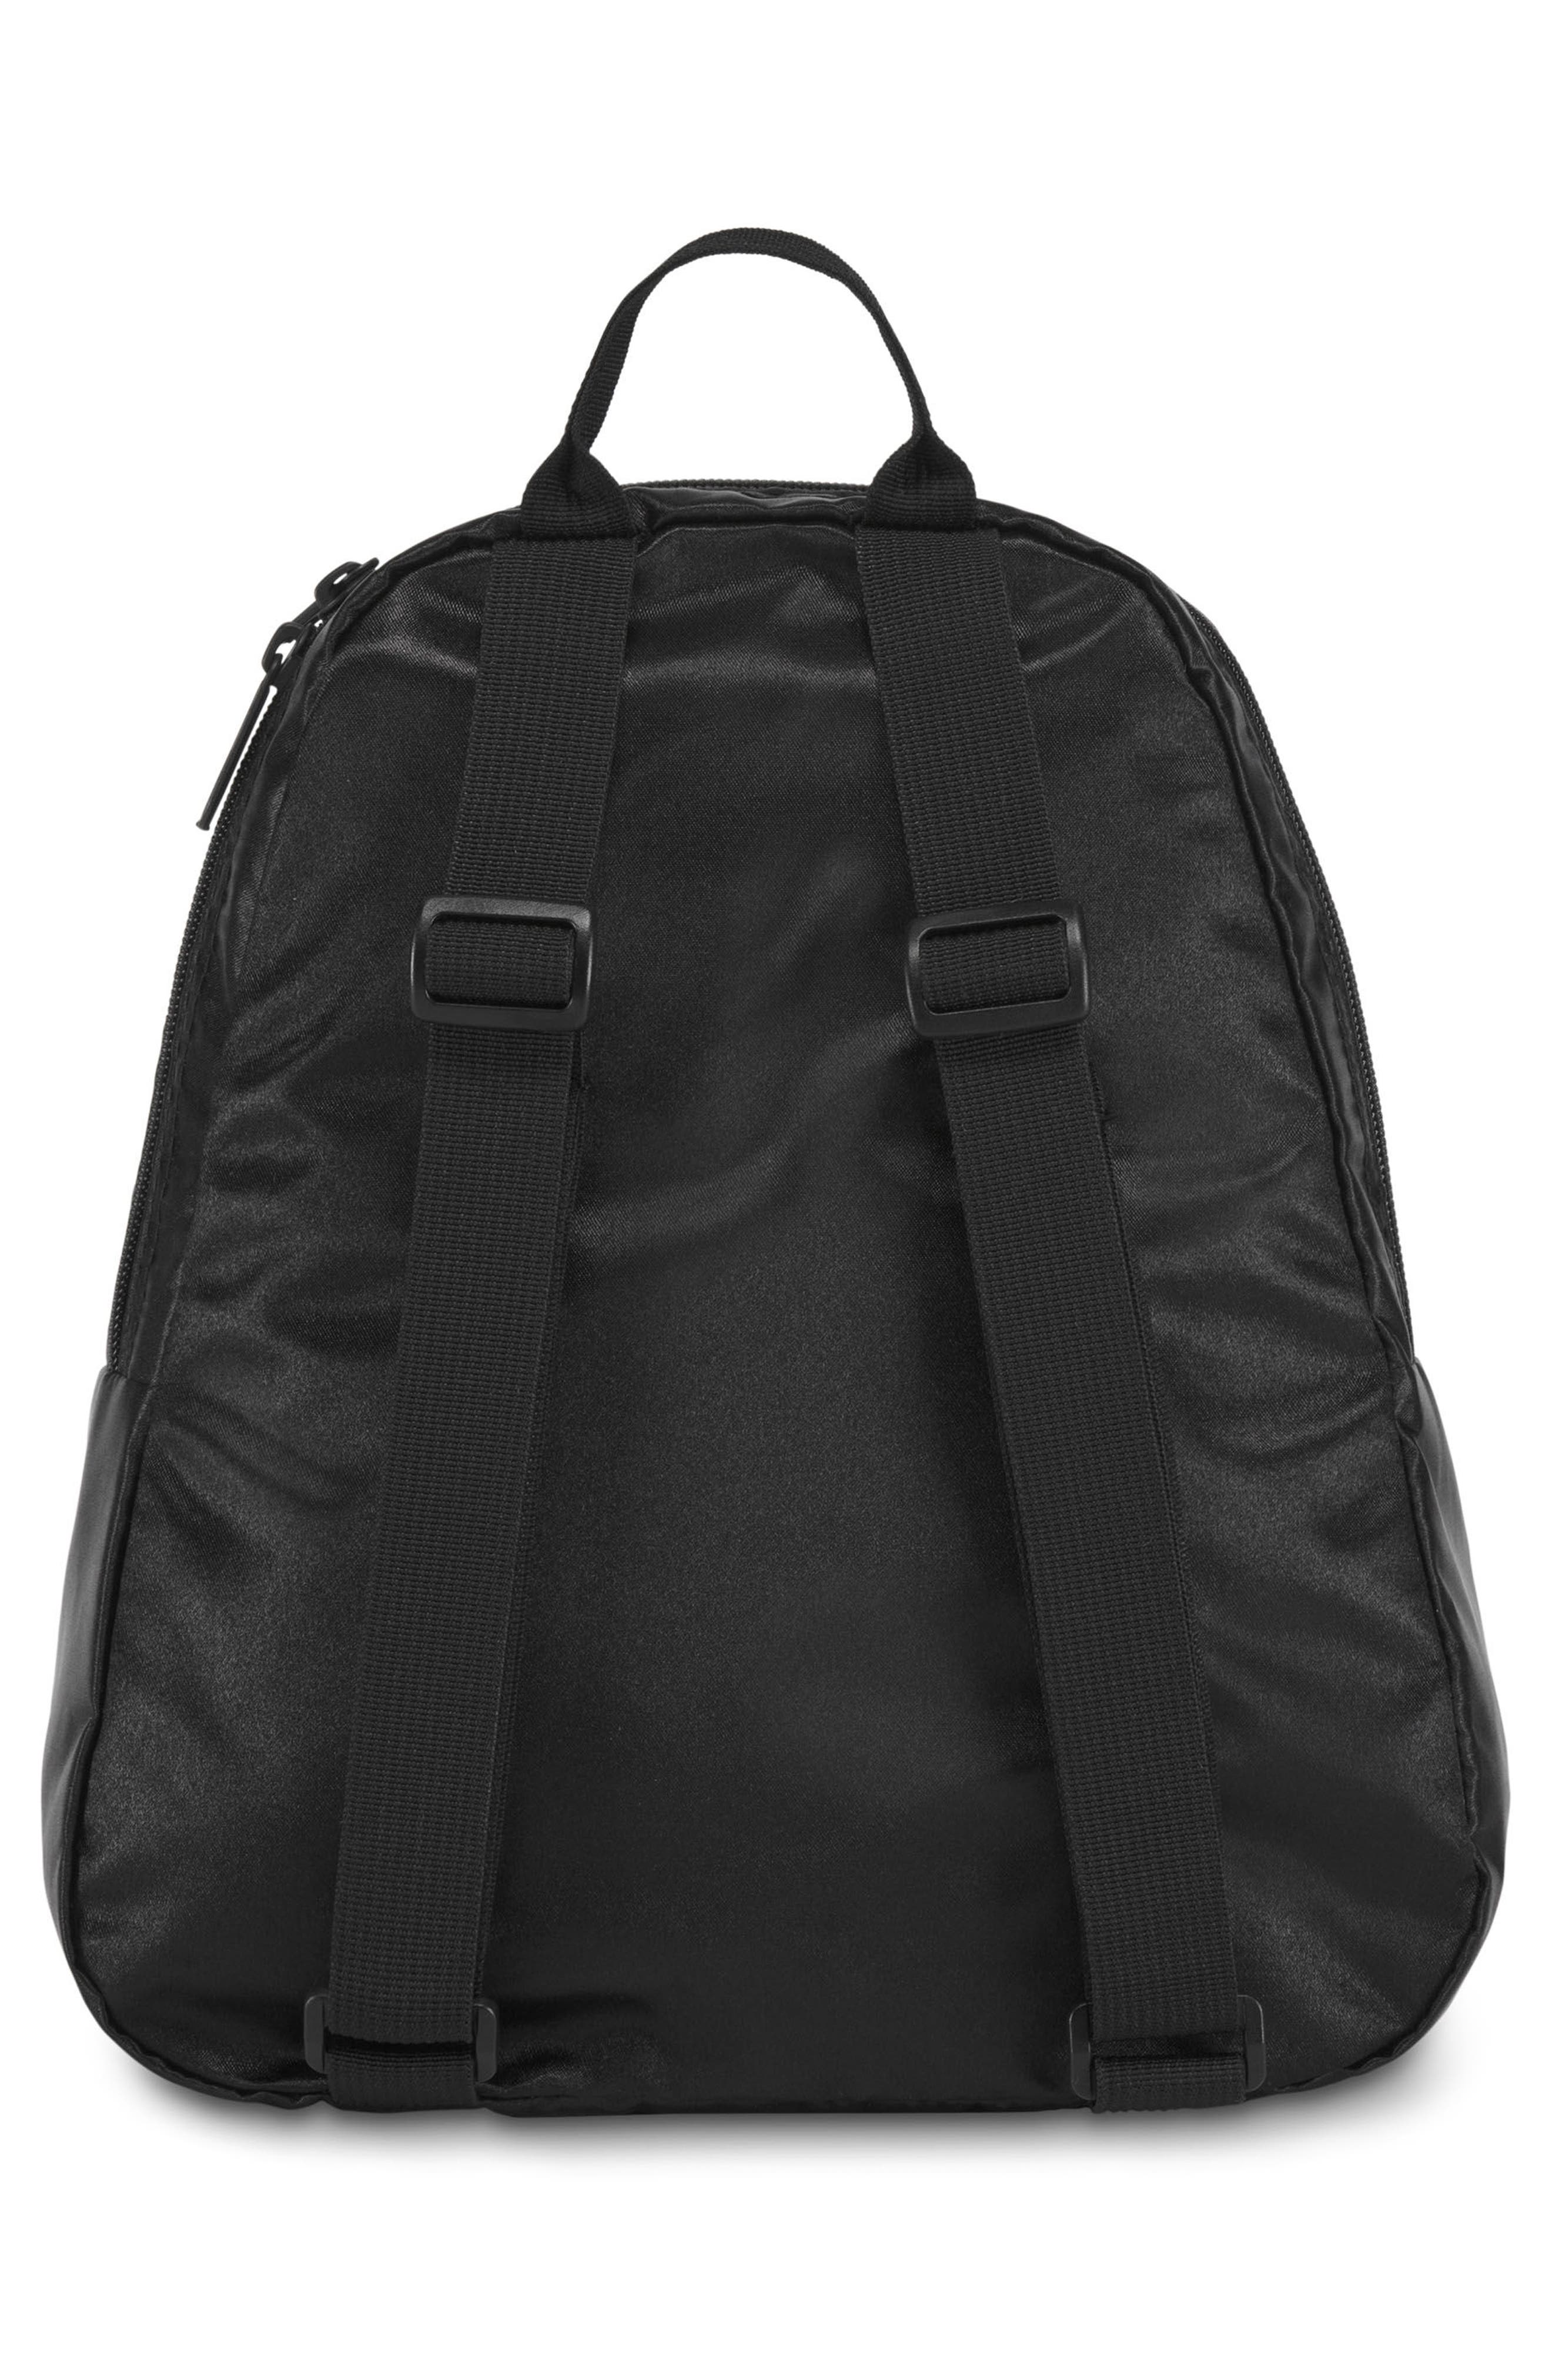 Half Pint Backpack,                             Alternate thumbnail 7, color,